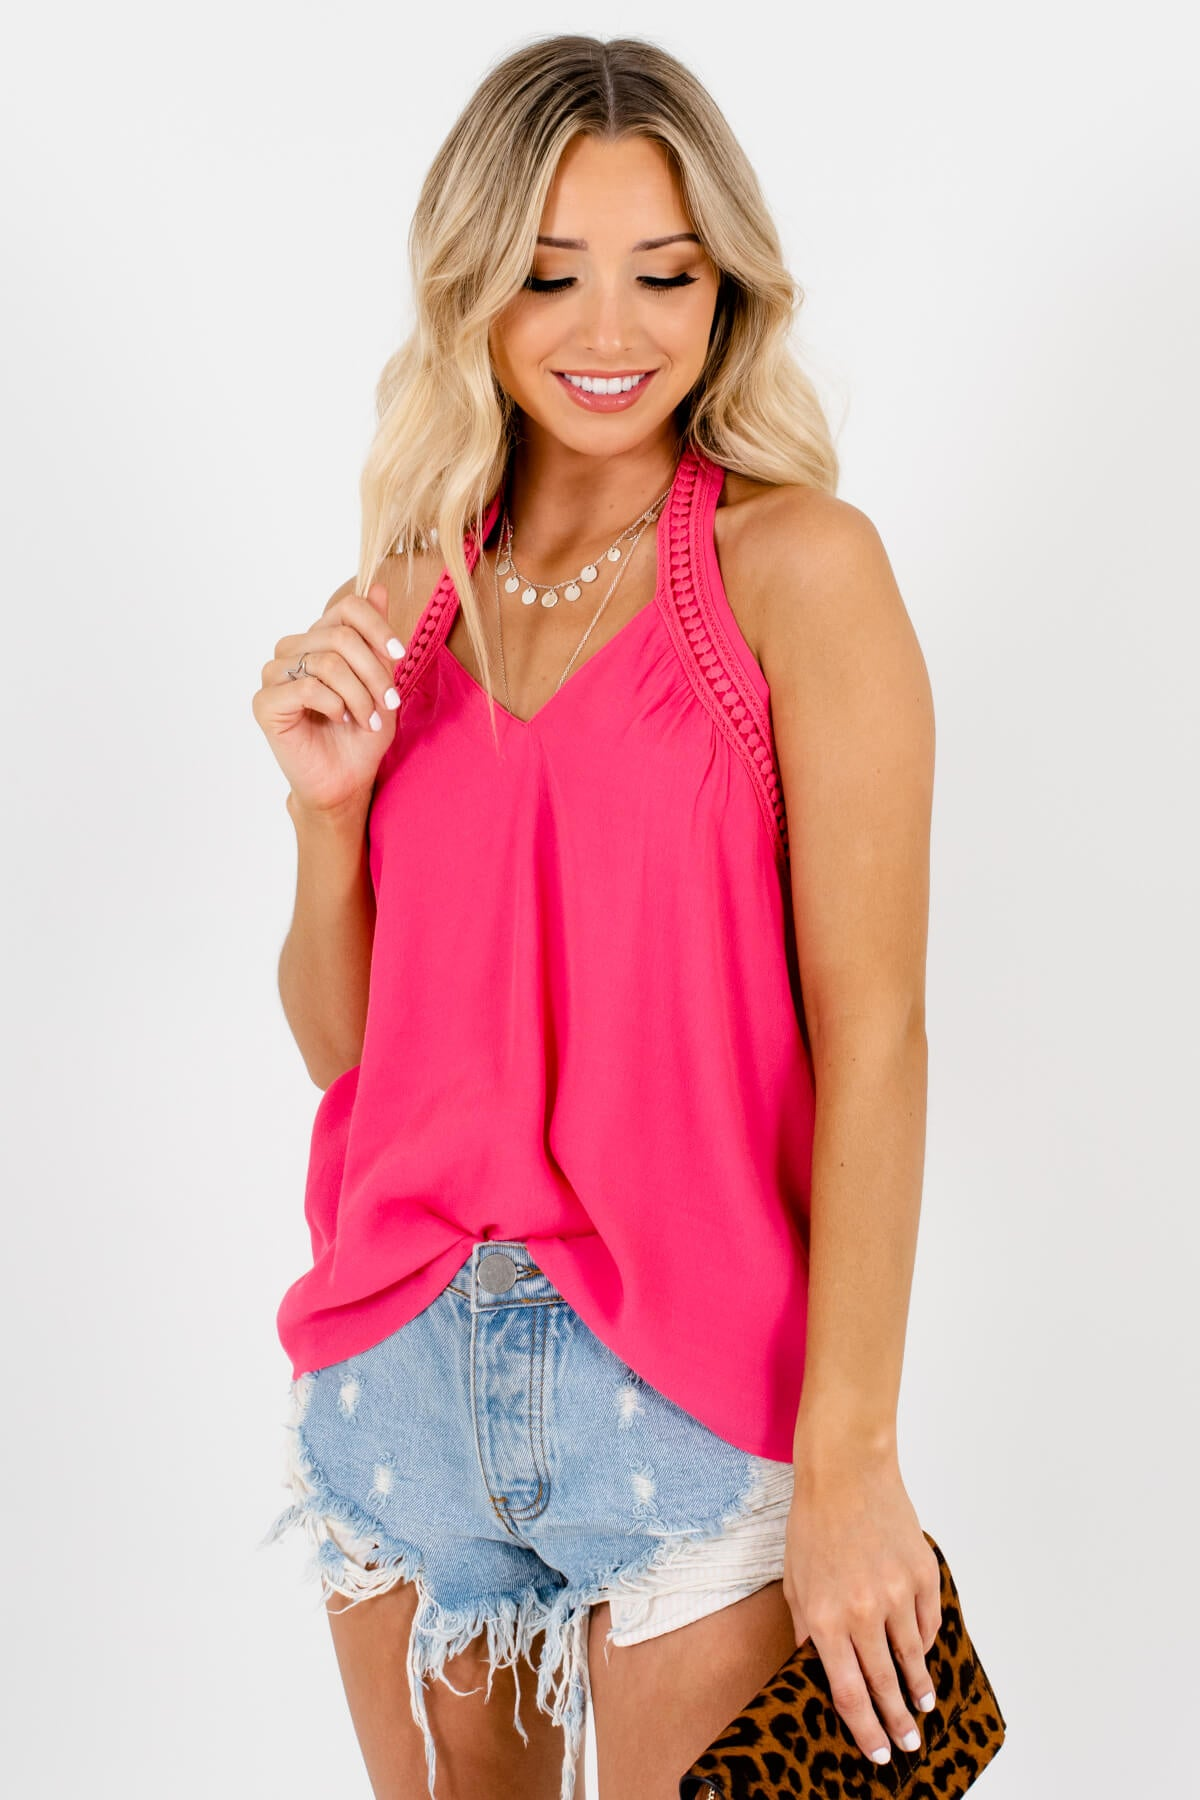 Pink Crochet Accented Boutique Tank Tops for Women